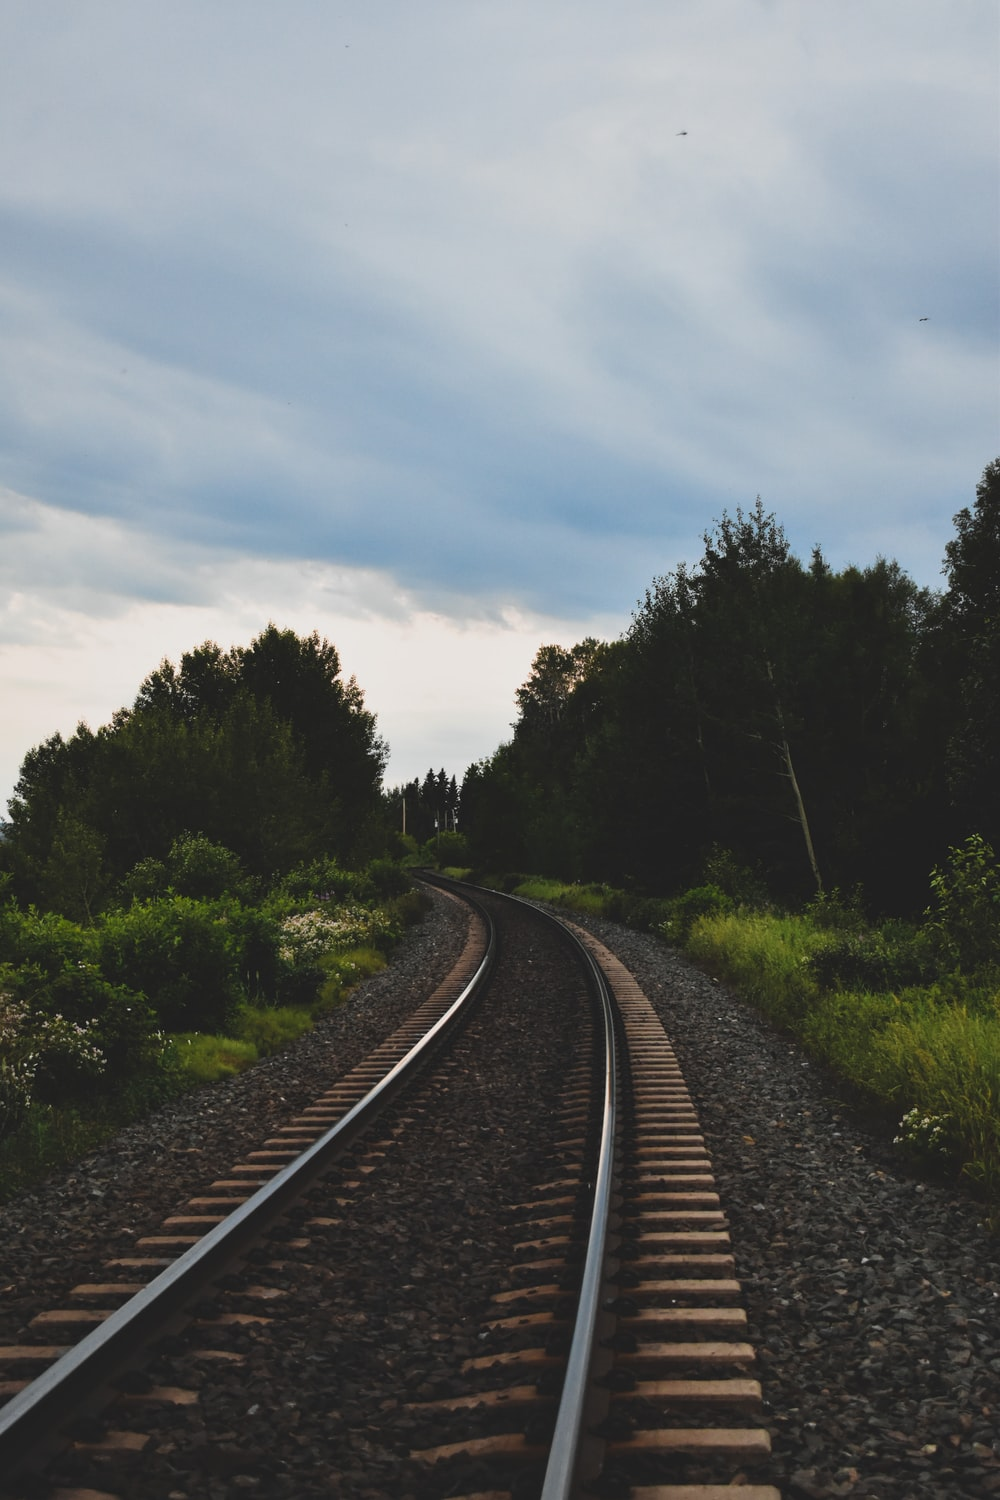 train rail near green trees under cloudy sky during daytime